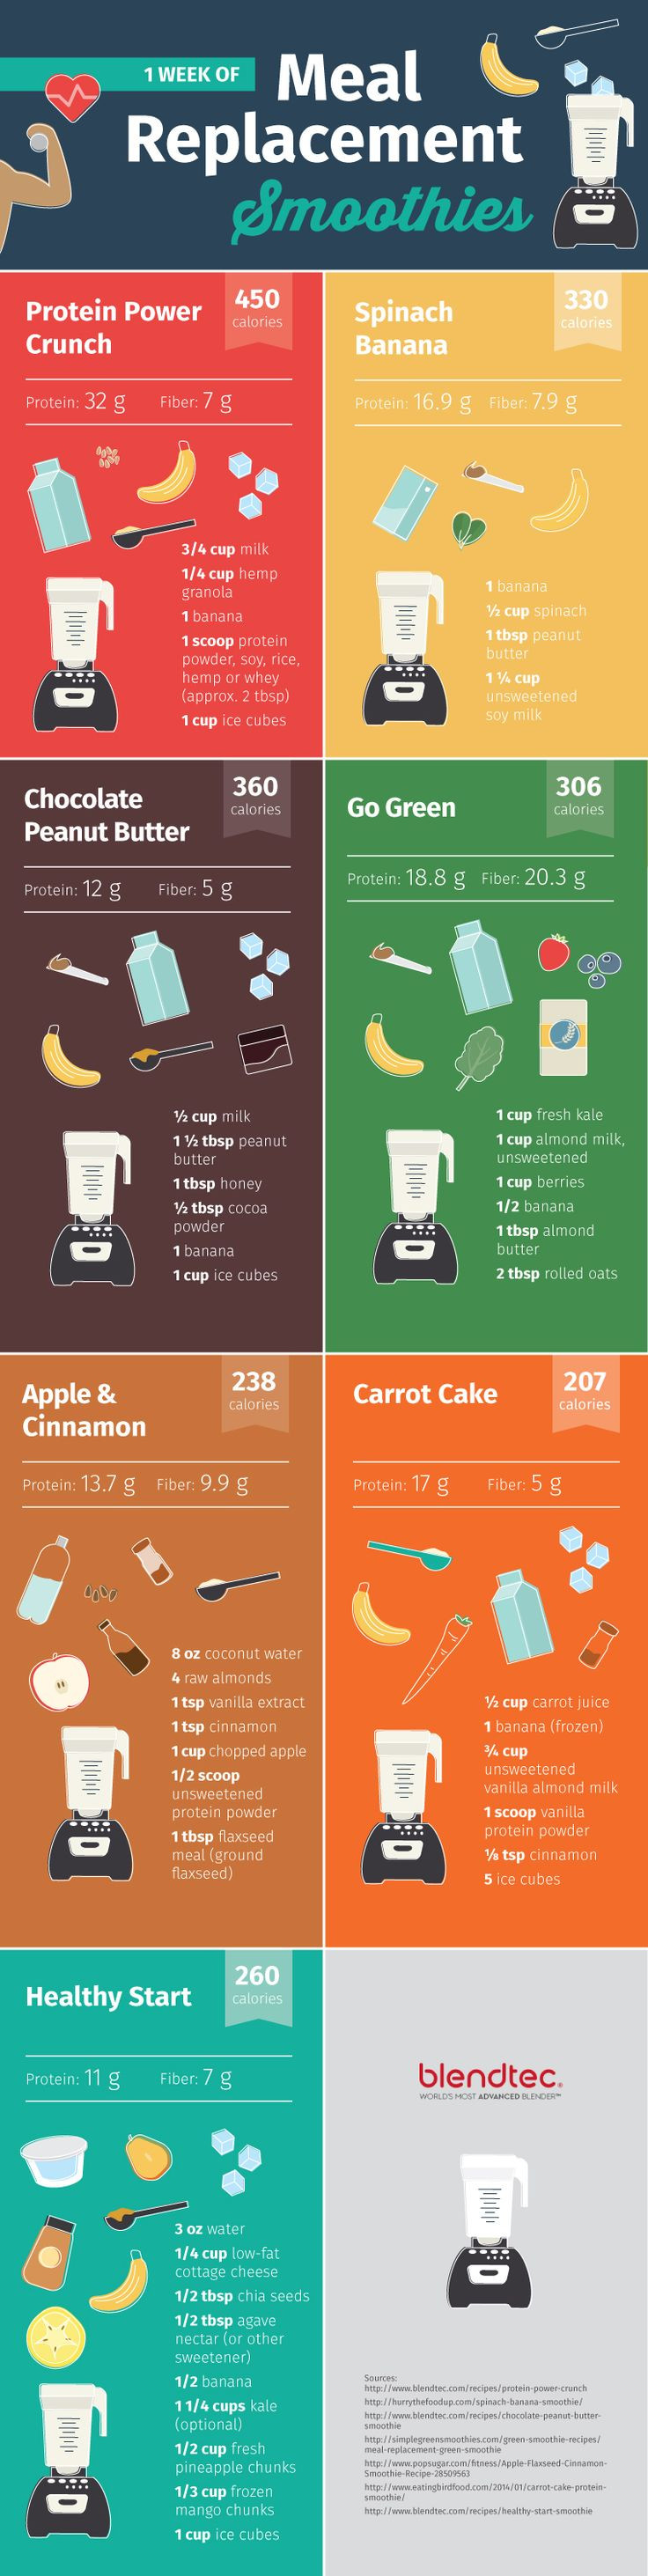 Meal Replacement Smoothie Recipes  Meal Replacement Smoothies For Every Day The Week